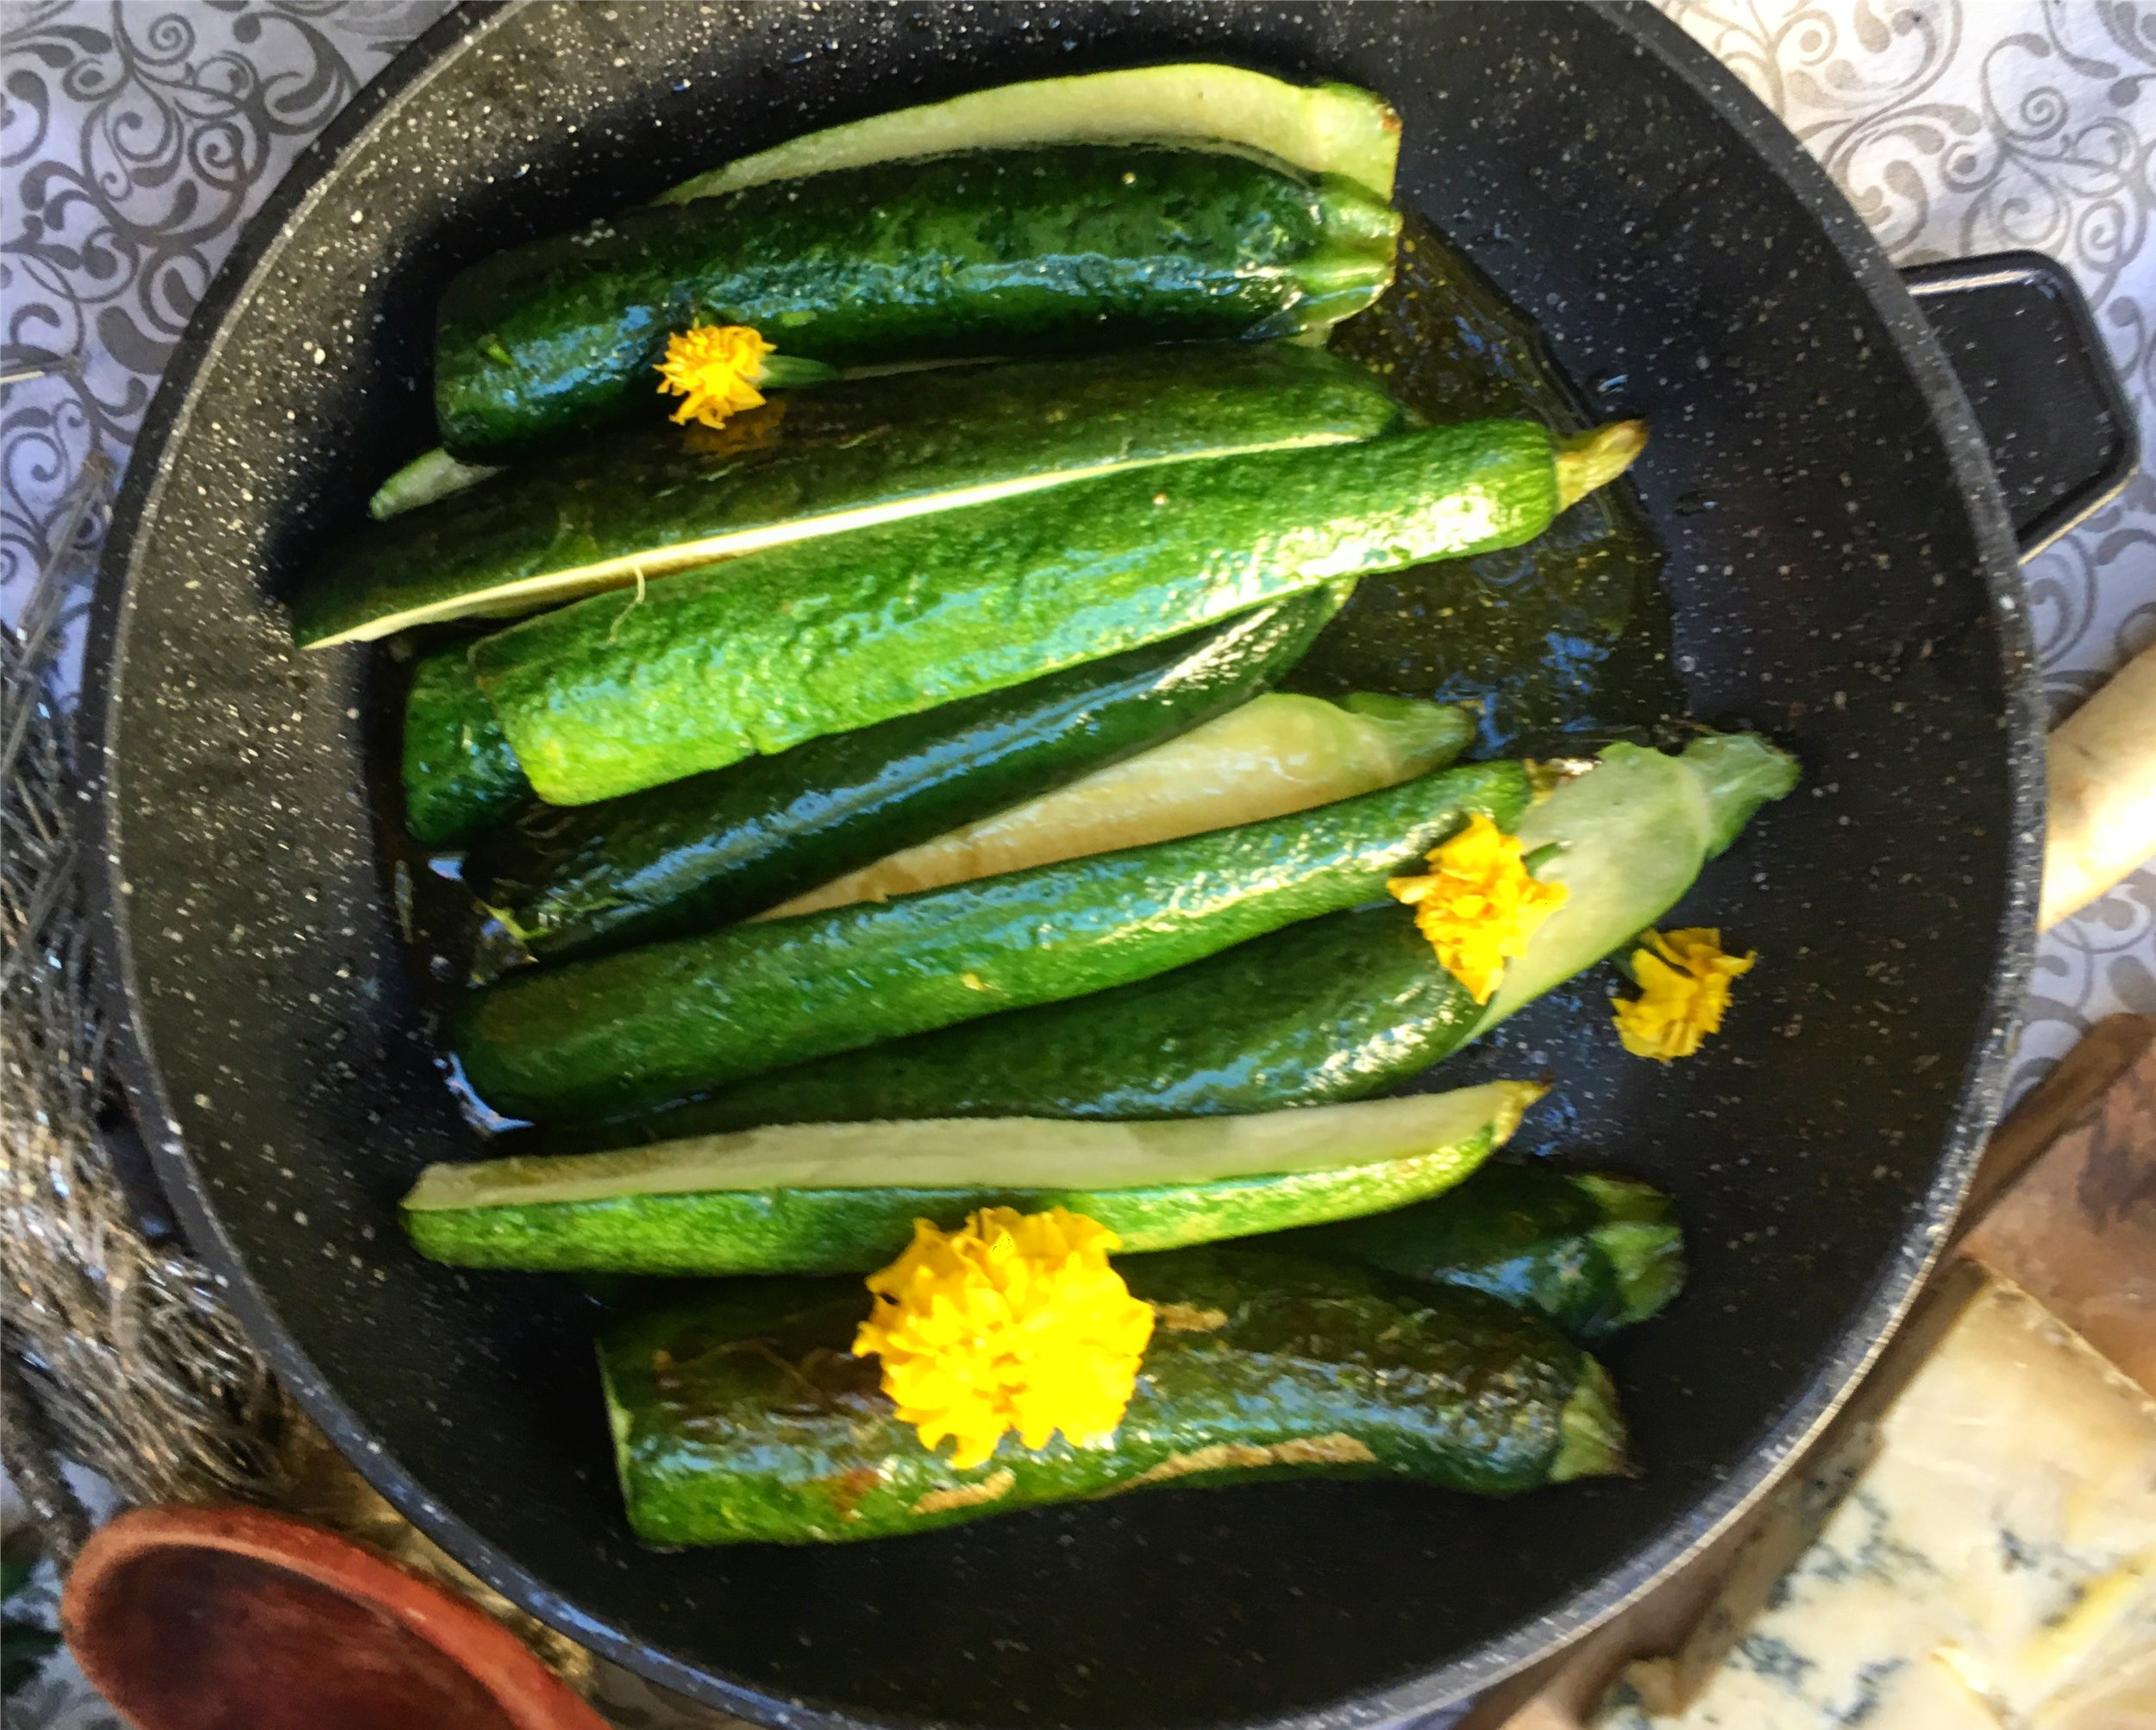 Zucchini with edible marigolds. The marigold color evokes zucchini blossoms (which can be hard to find). After adding salt and pepper, you can finish these in your oven in the same EuroCAST Dutch oven after you've removed the chicken and lentils (as above), or one of our sauté pans on the stovetop.Cook to desired doneness. I suggest about 5-7 minutes.